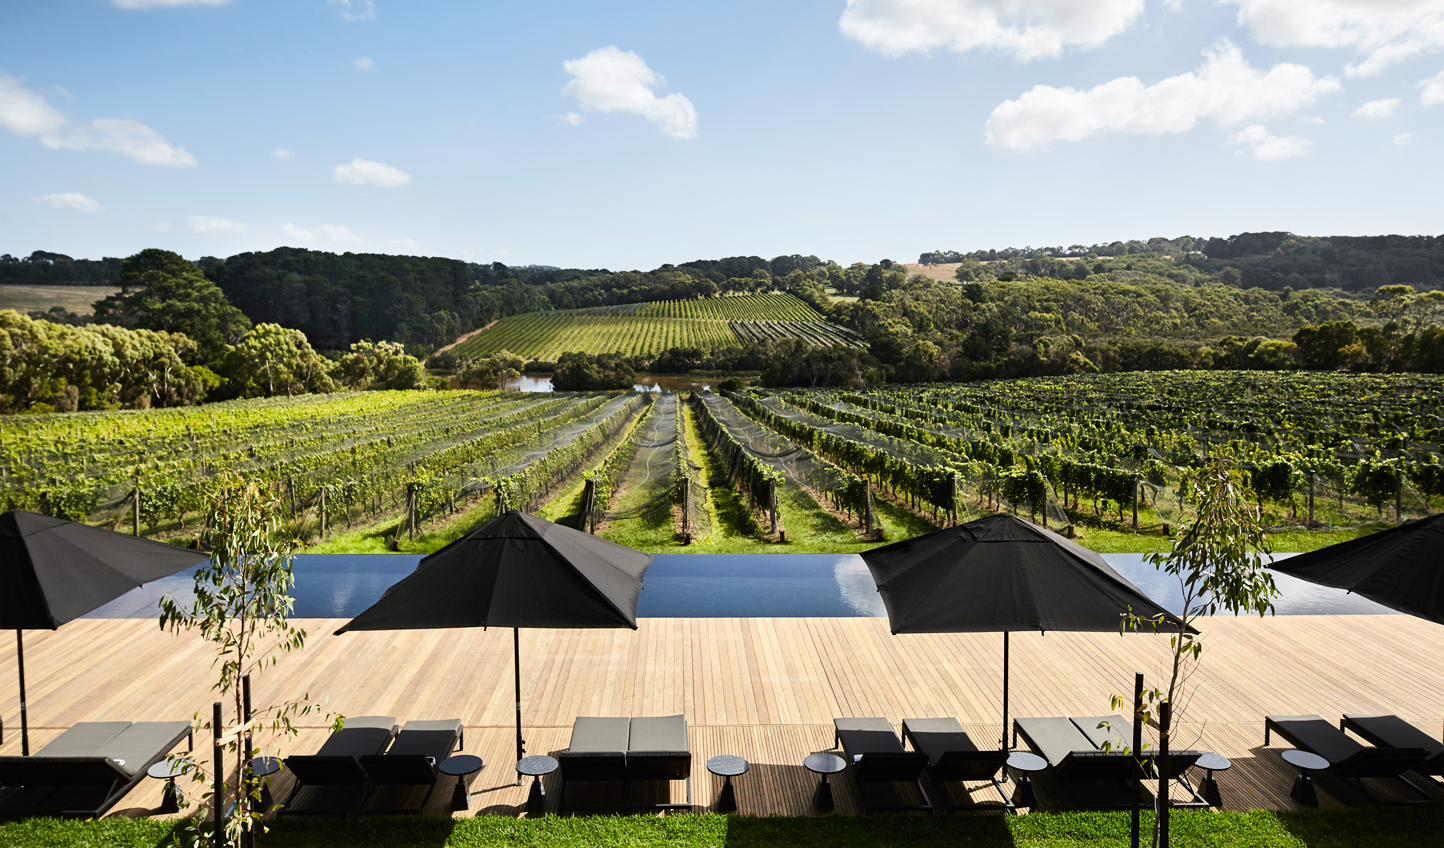 Enjoy a dip in the pool with a view of the vines